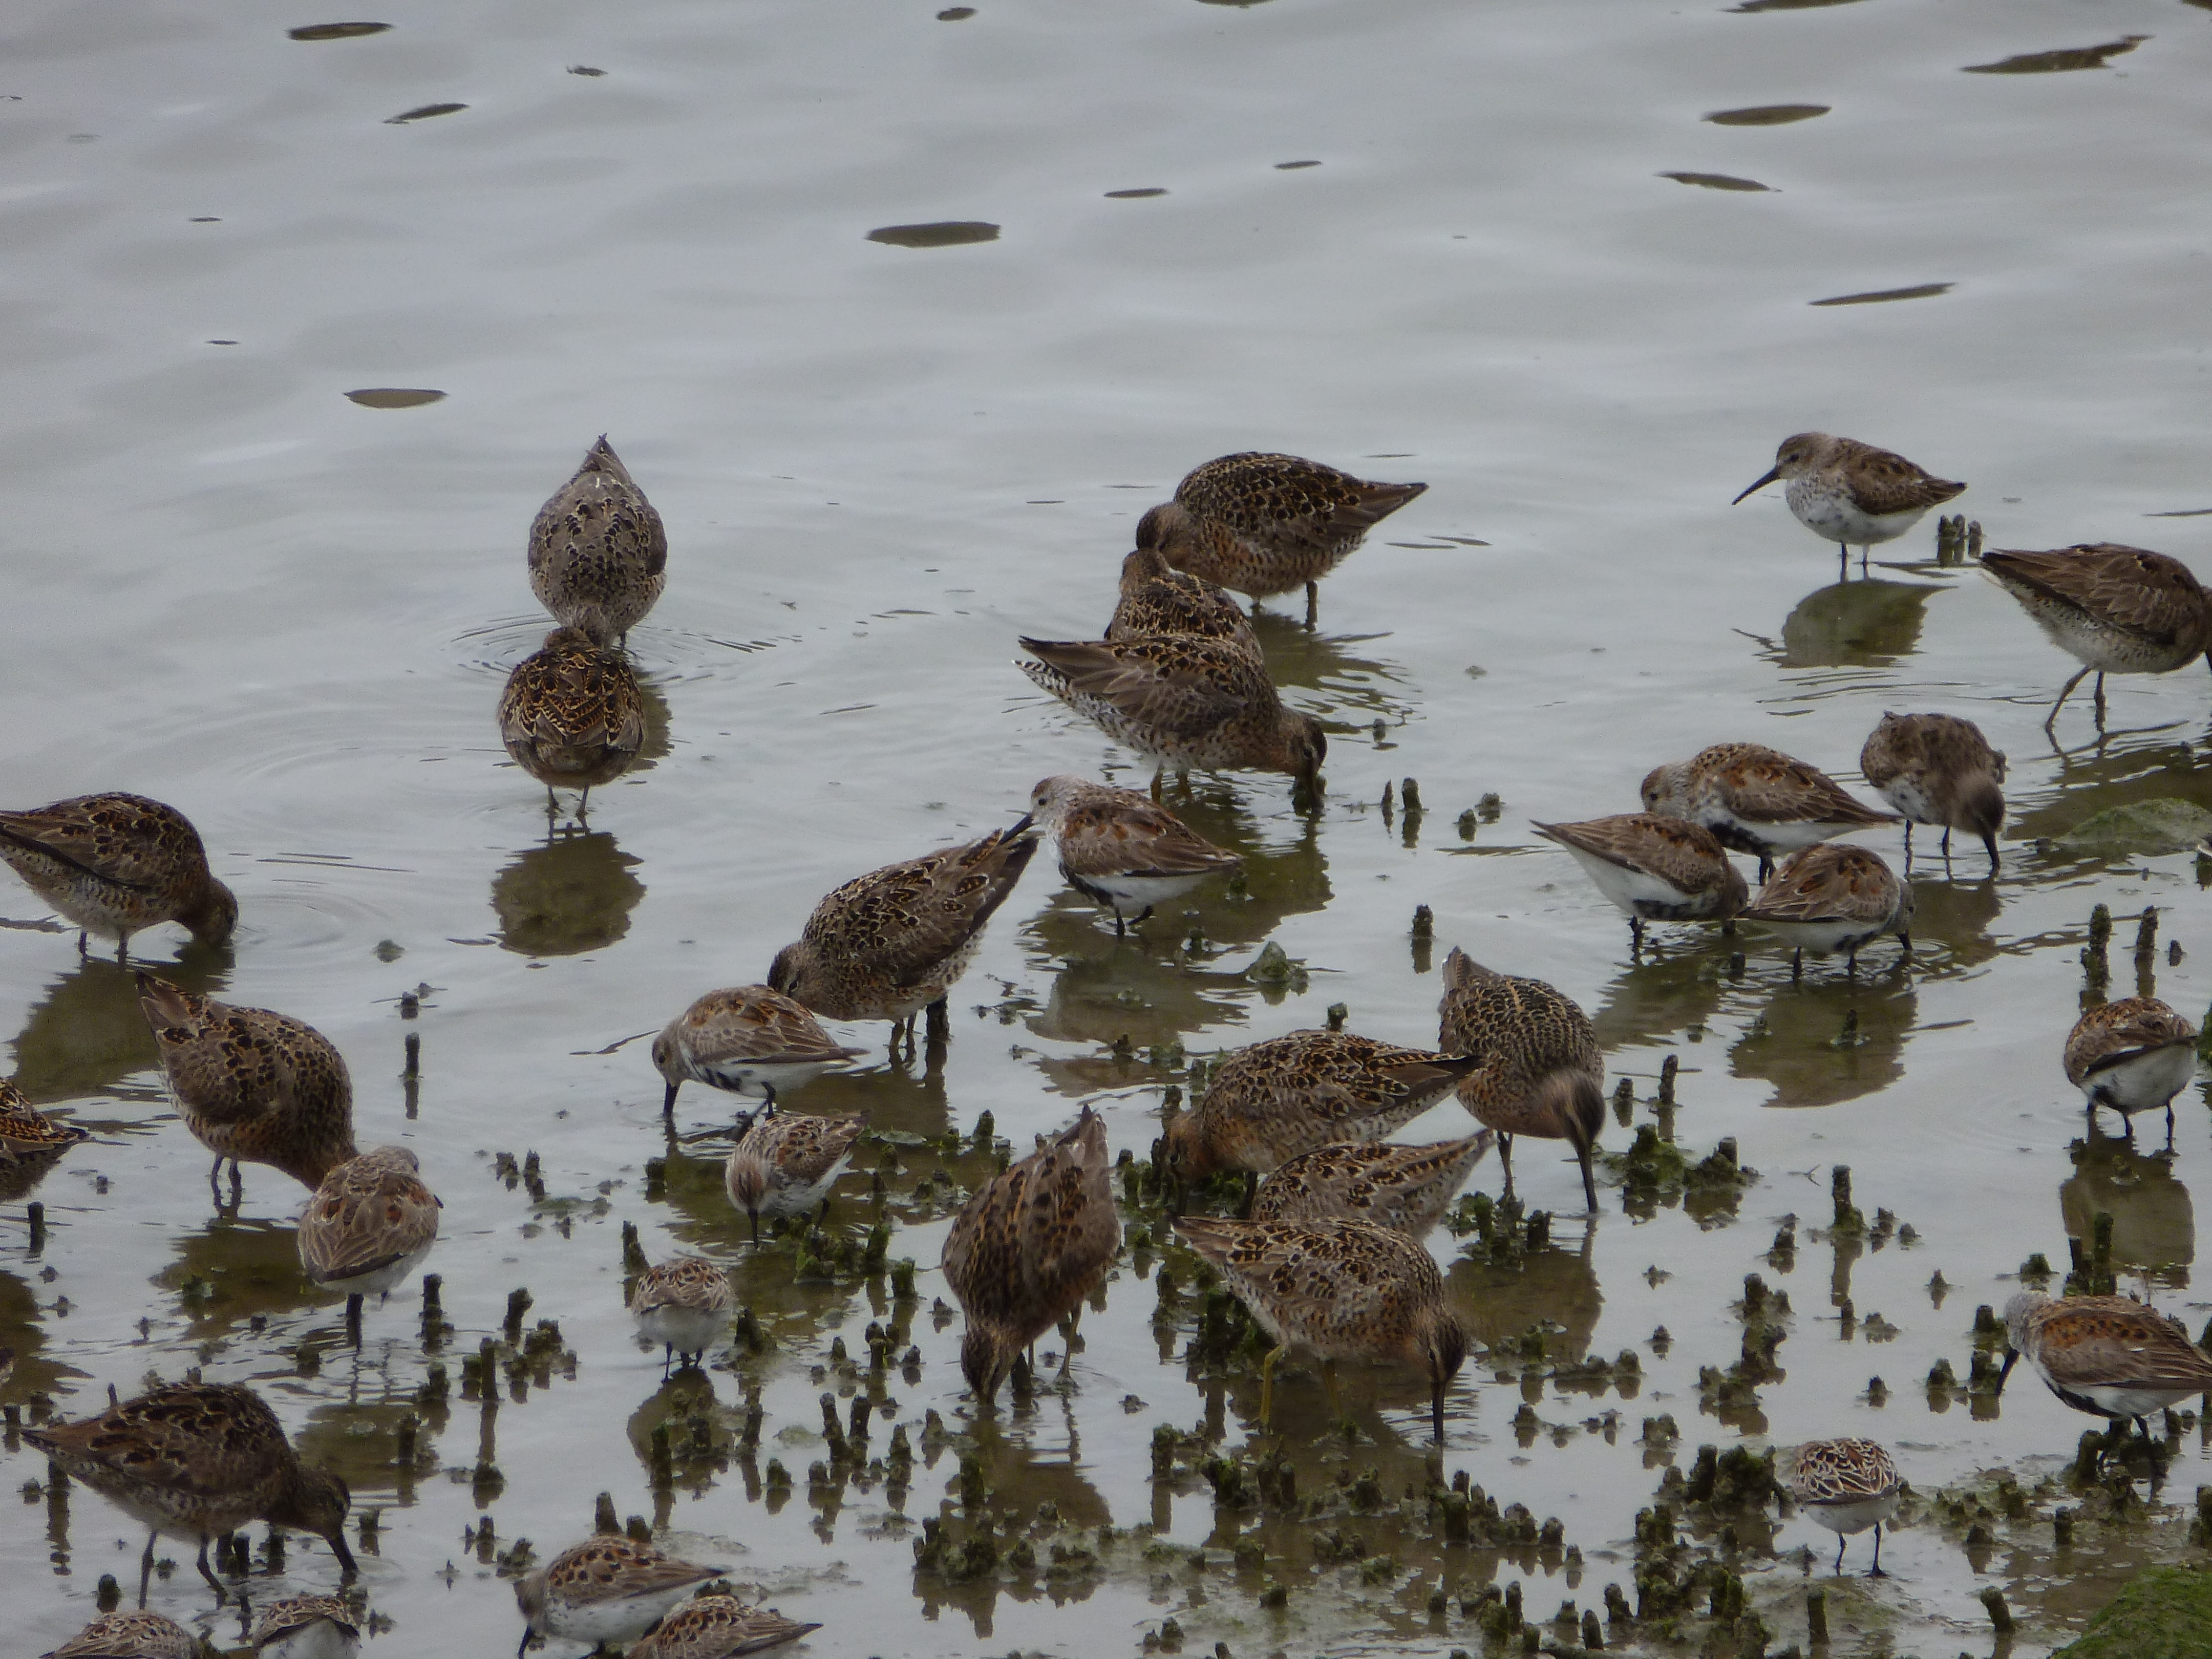 migratory sand pipers at crab cove in alameda photo by evelyn kennedy